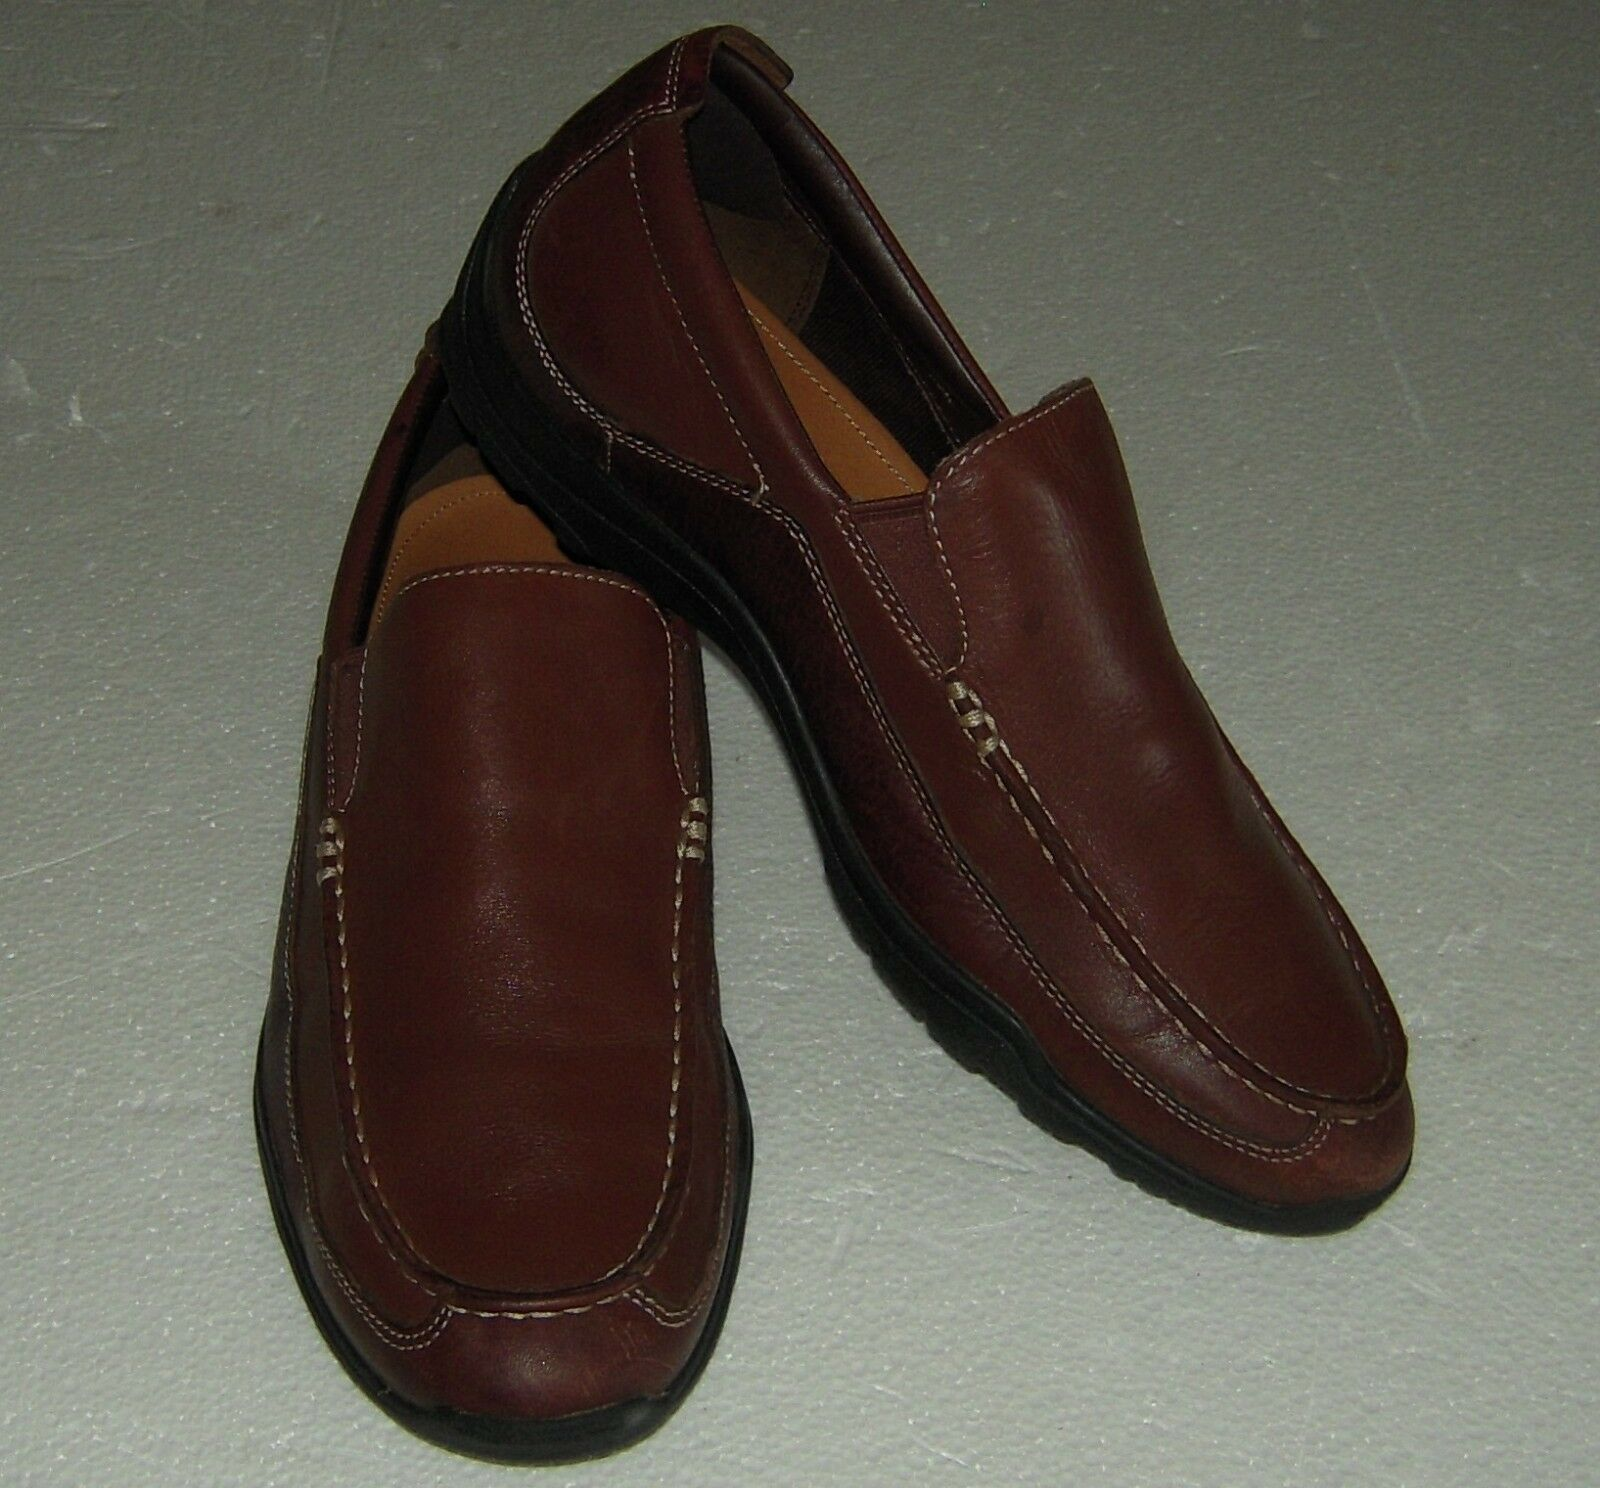 COLE HAAN BROWN Leather Driving Slip On Loafers mens size 9M(US)